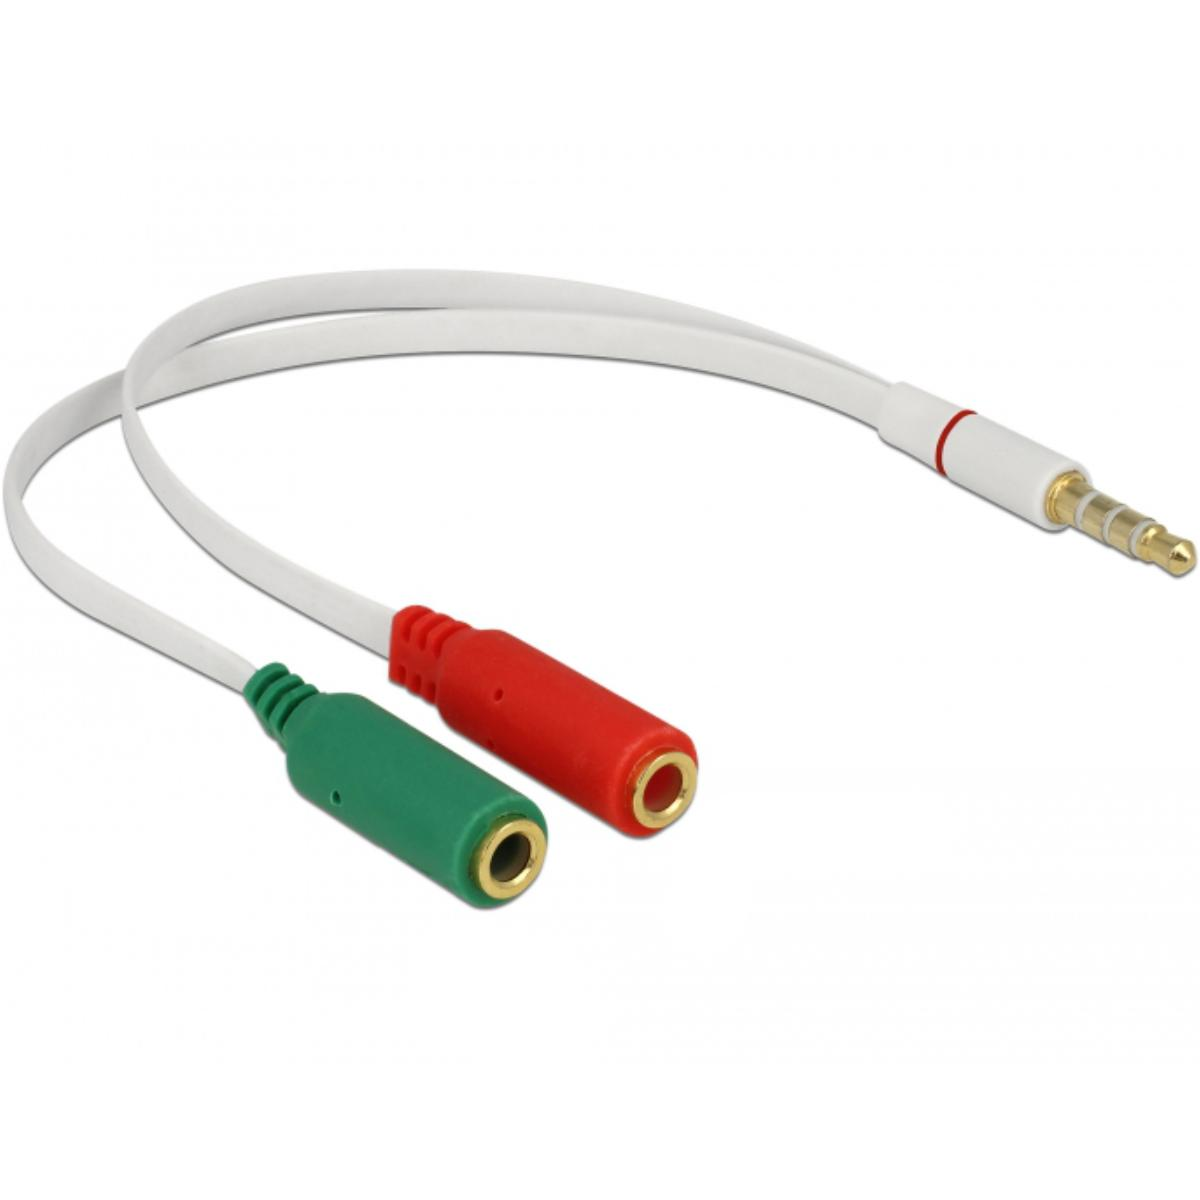 Jack splitter kabel - Microfoon en audio o.a. geschikt voor Apple Iphone/iPad, Playstation 4, Xbox One en Nintendo Switch